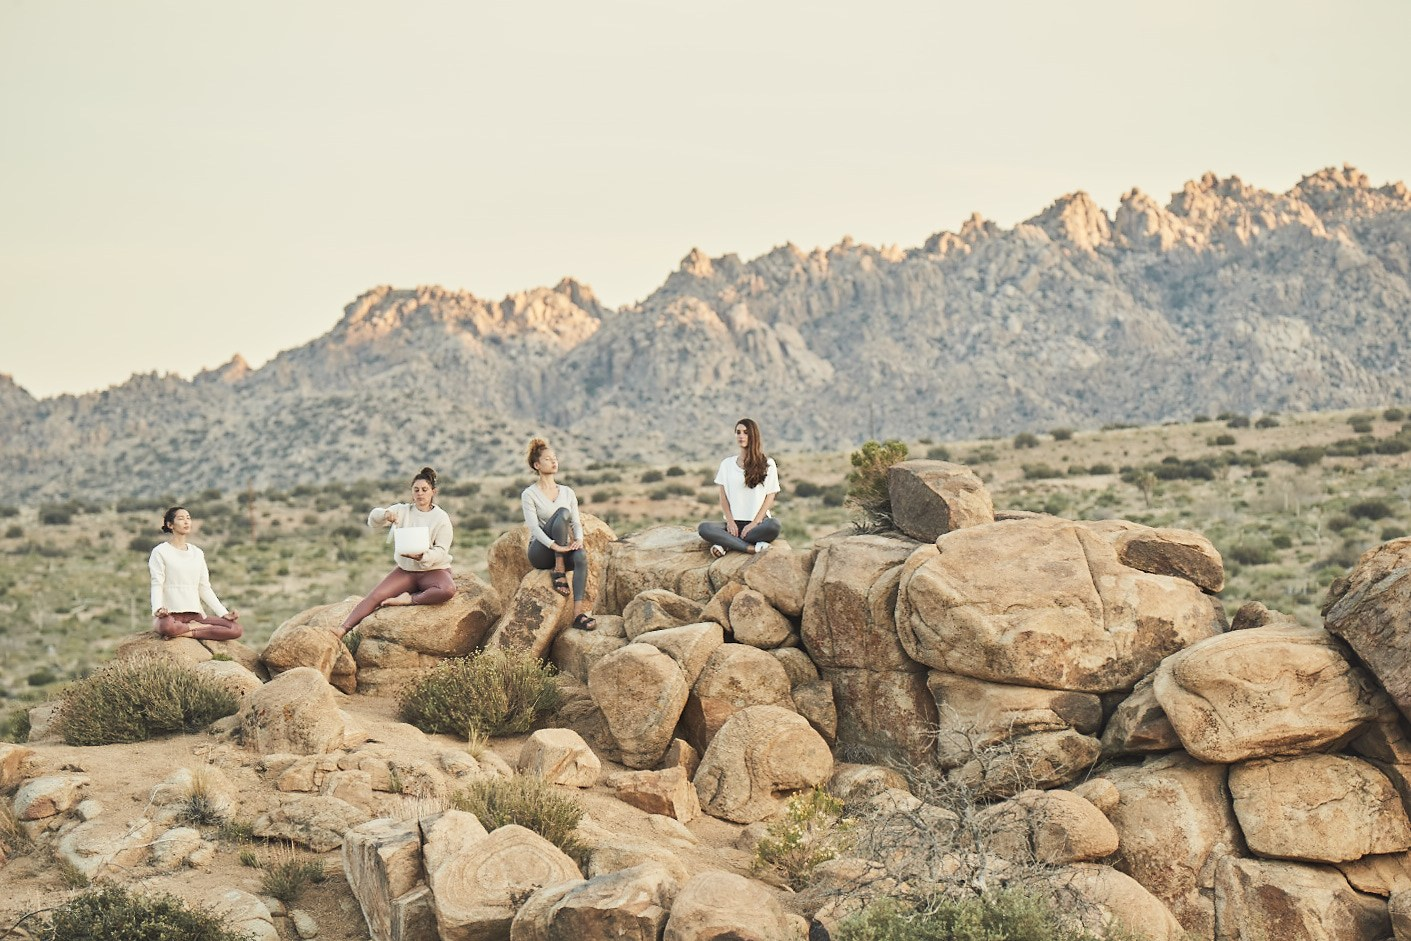 photo by Will Davidson for Athleta